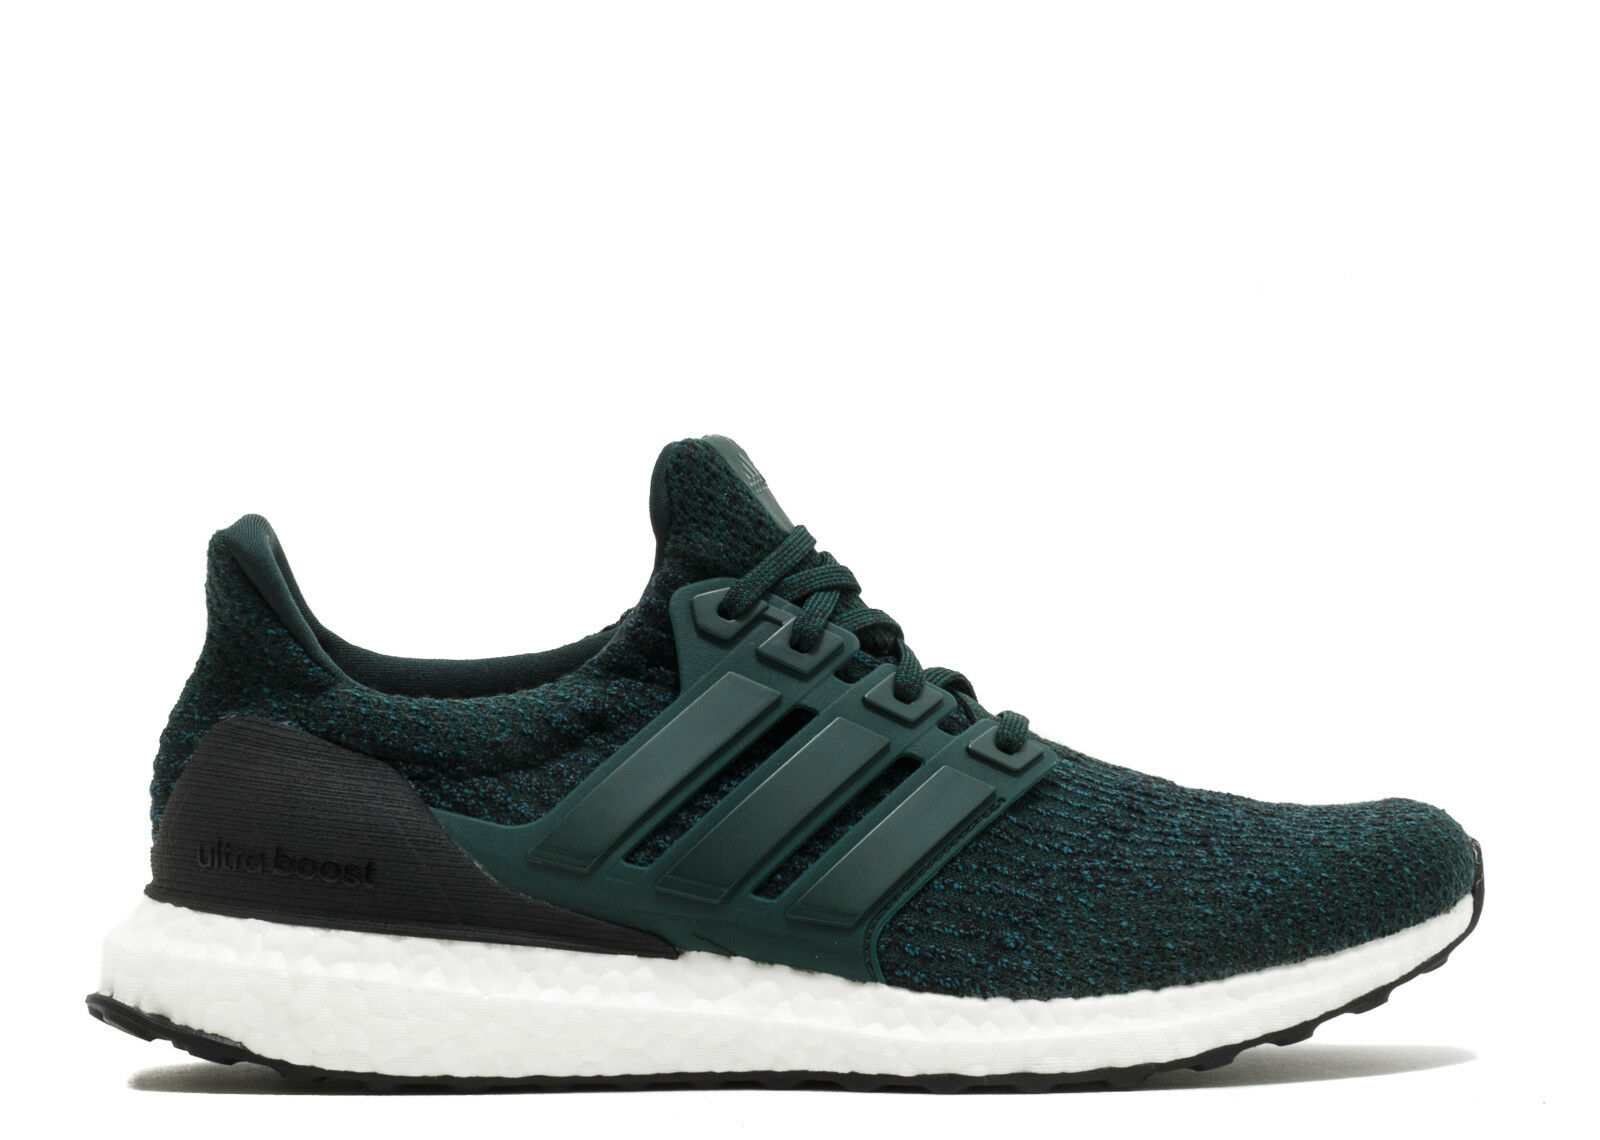 210e32bfe adidas Ultra Boost 3.0 Night Green Dark S82024 Sz 10.5 Unreleased ...